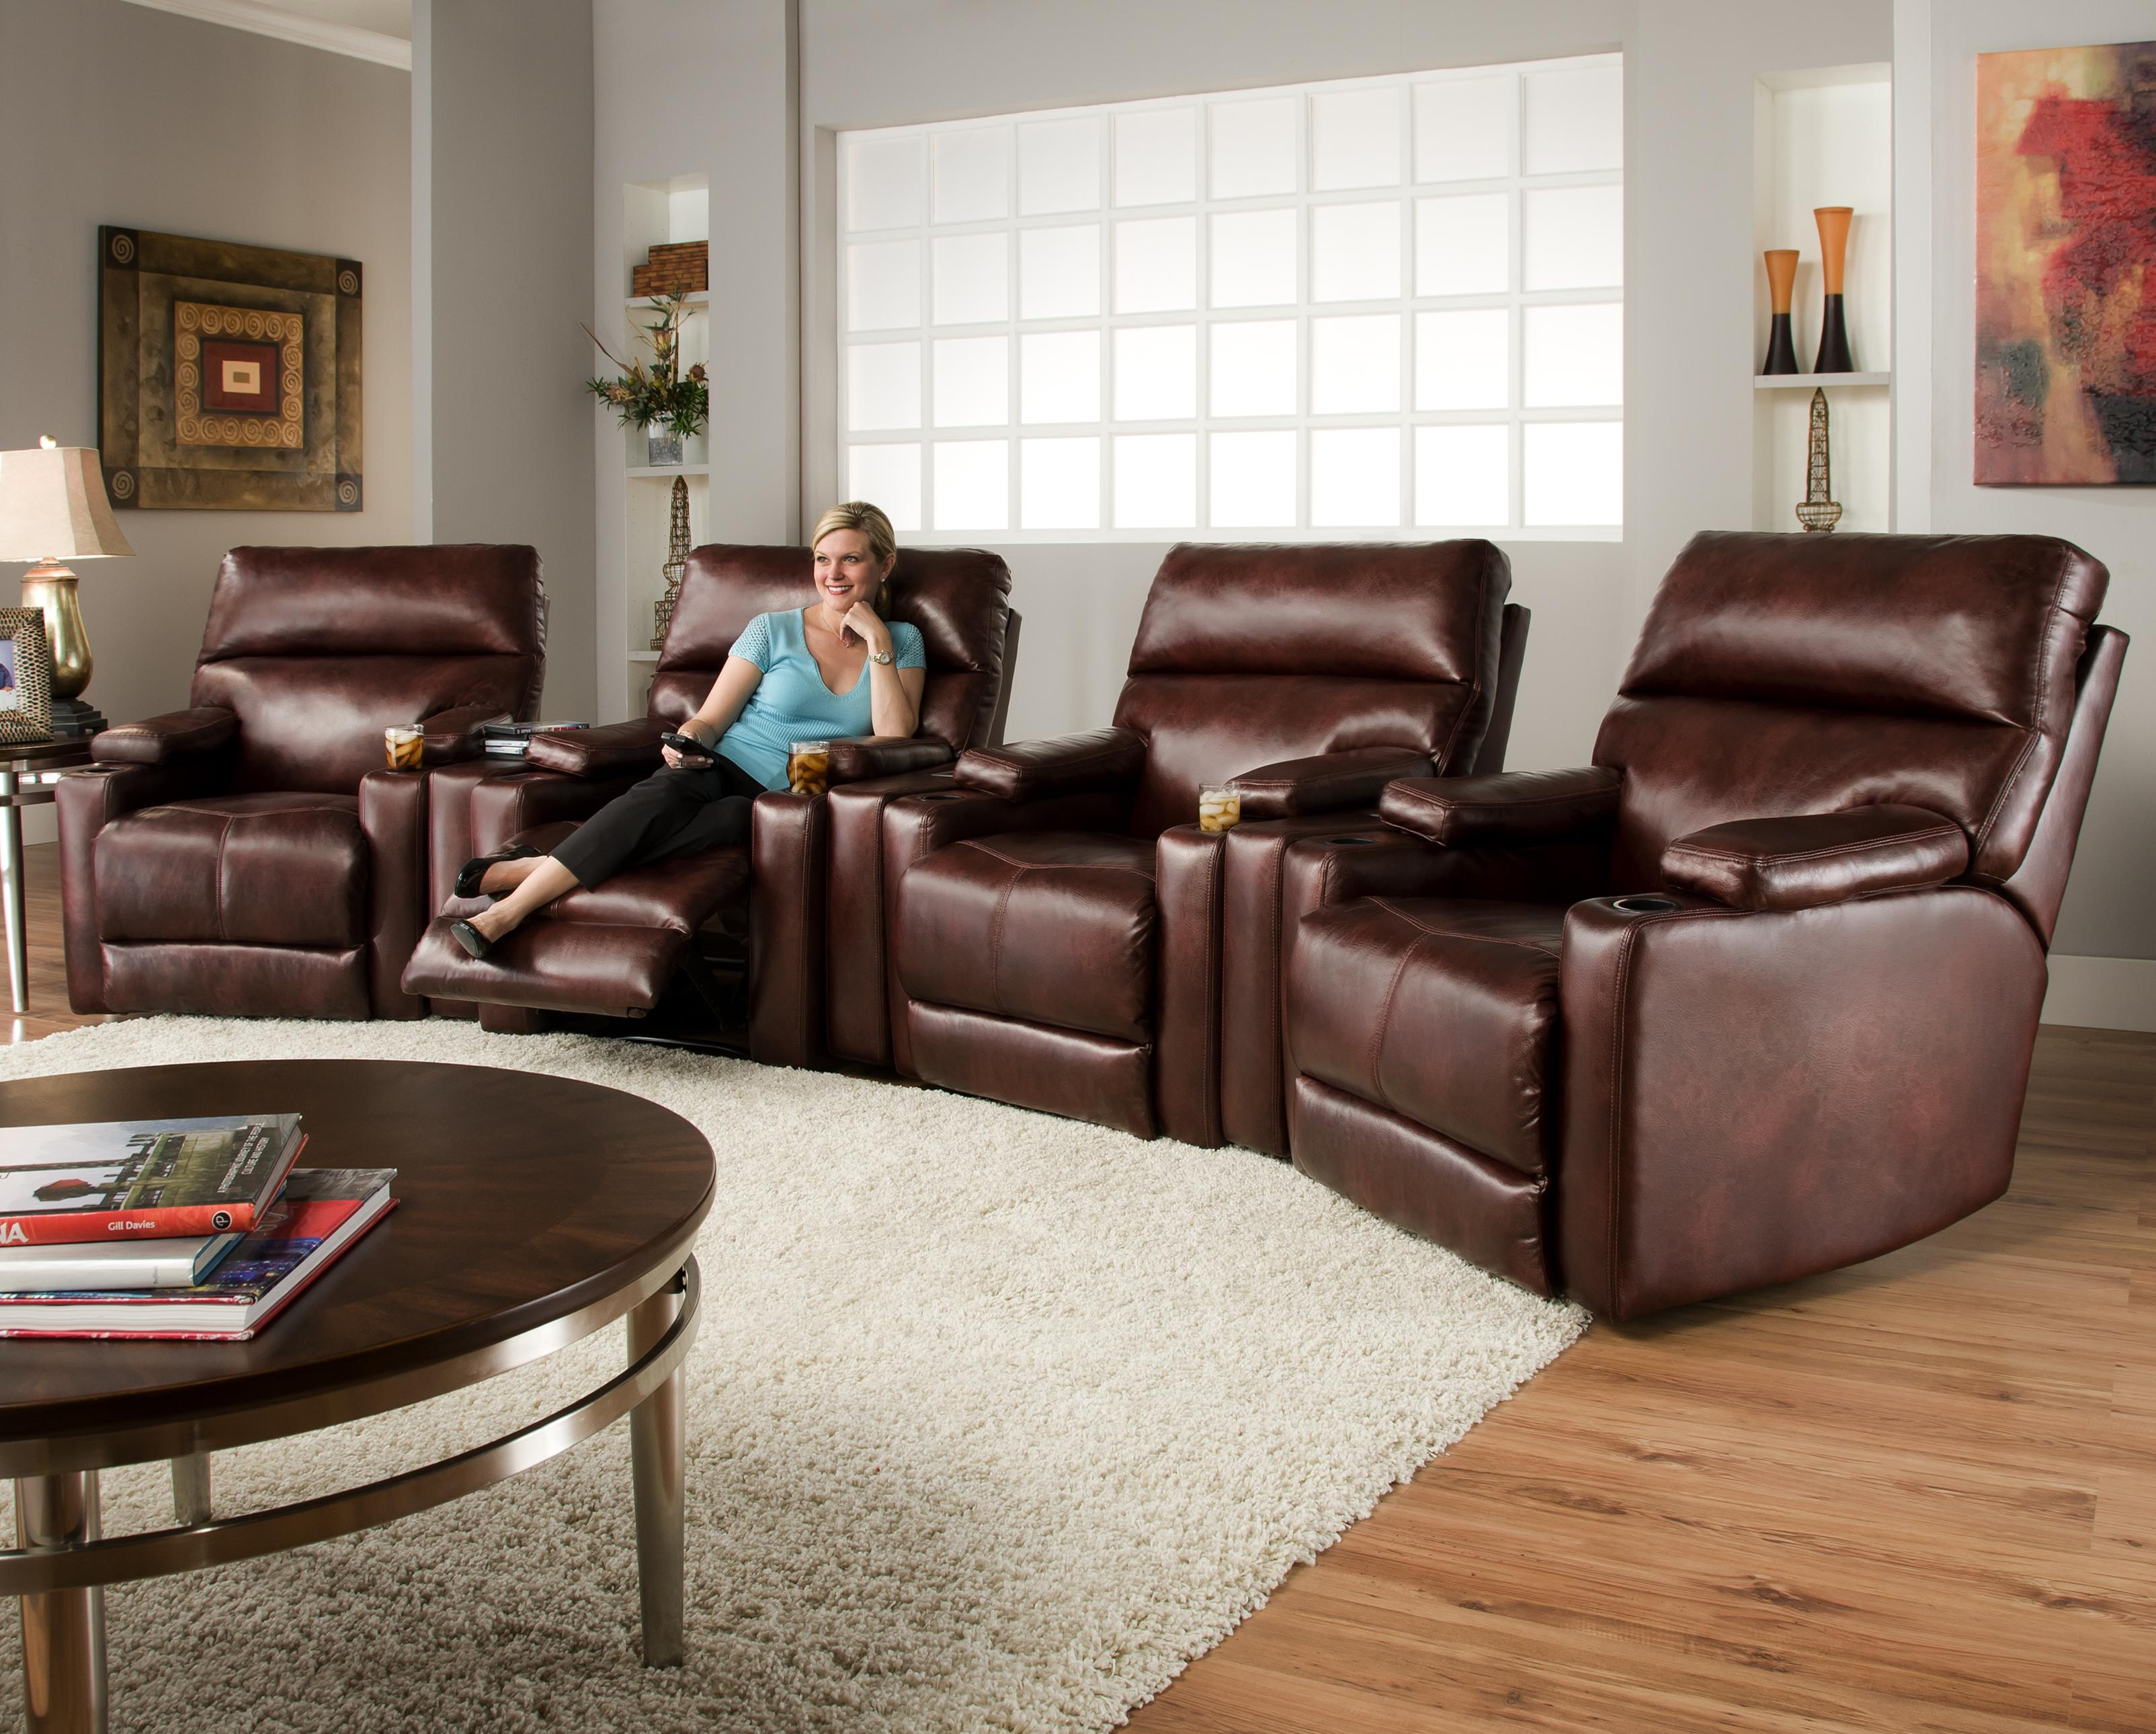 furniture loveseat theater recliners reviews pdx home ketter recliner wayfair latitude run